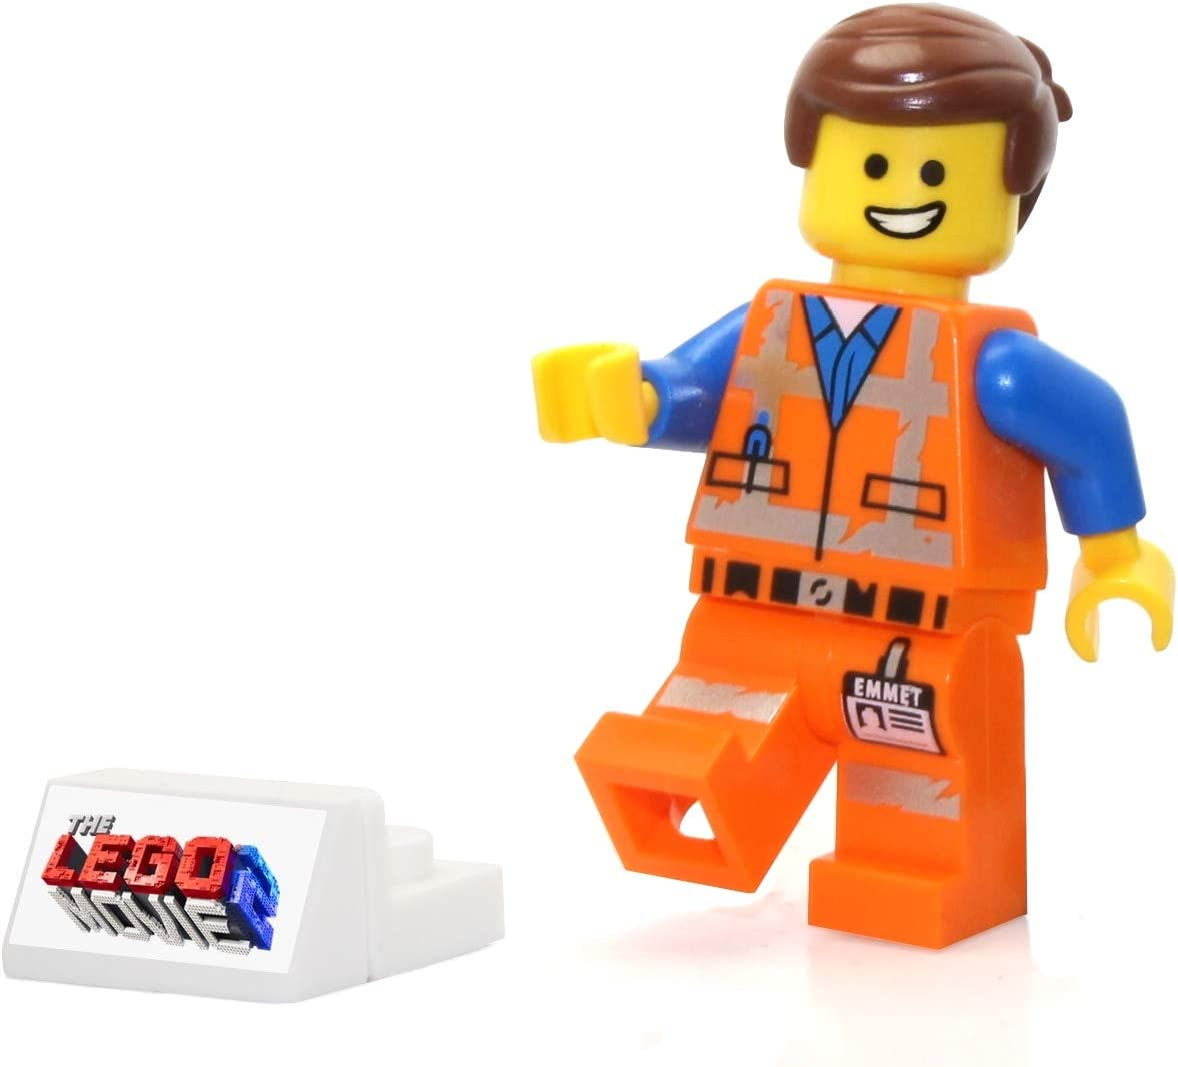 LEGO Movie 2 Emmet with Smile Worn Uniform Minifigure from 70847